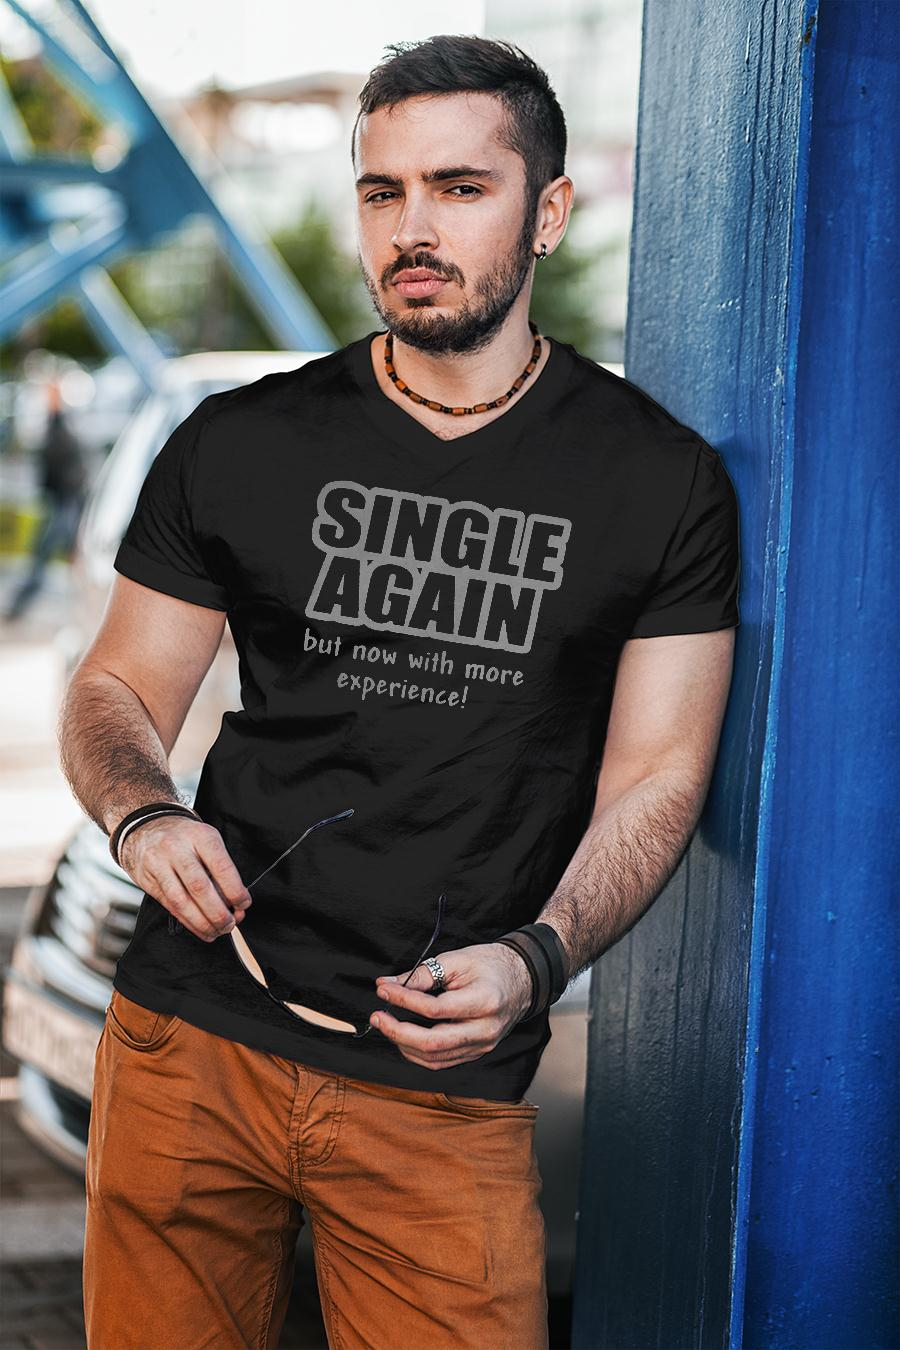 Single again but now with more experience shirt unisex